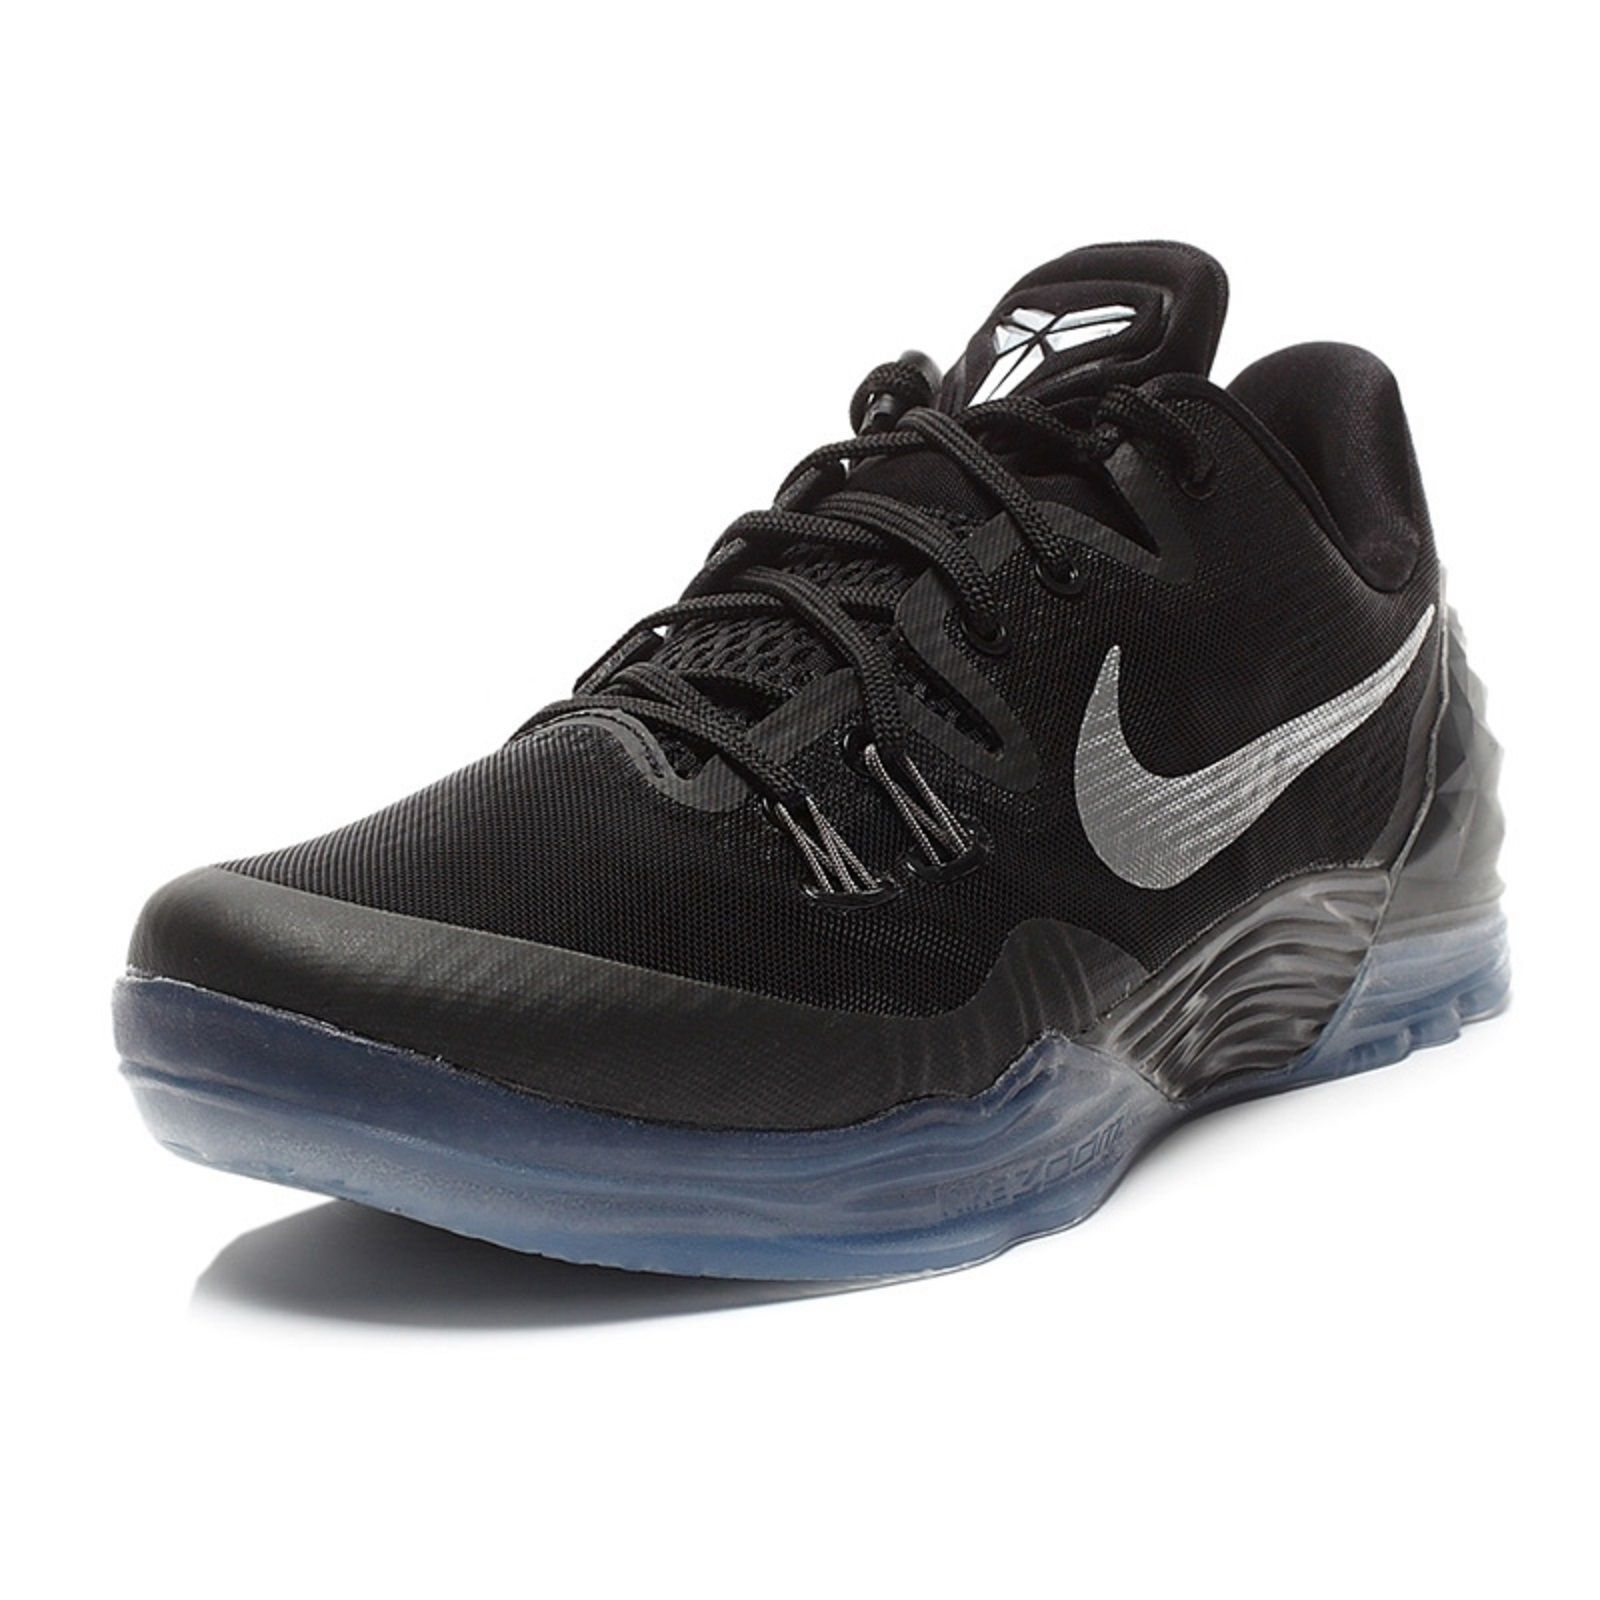 be4d05c3486 Latest Style Nike Kobe Venomenon 6 Triple Black 897657 001 Mens Sport Basketball  Shoes Nike Zoom Kobe Venomenon 5 EP Limit Black Basketball Shoes .